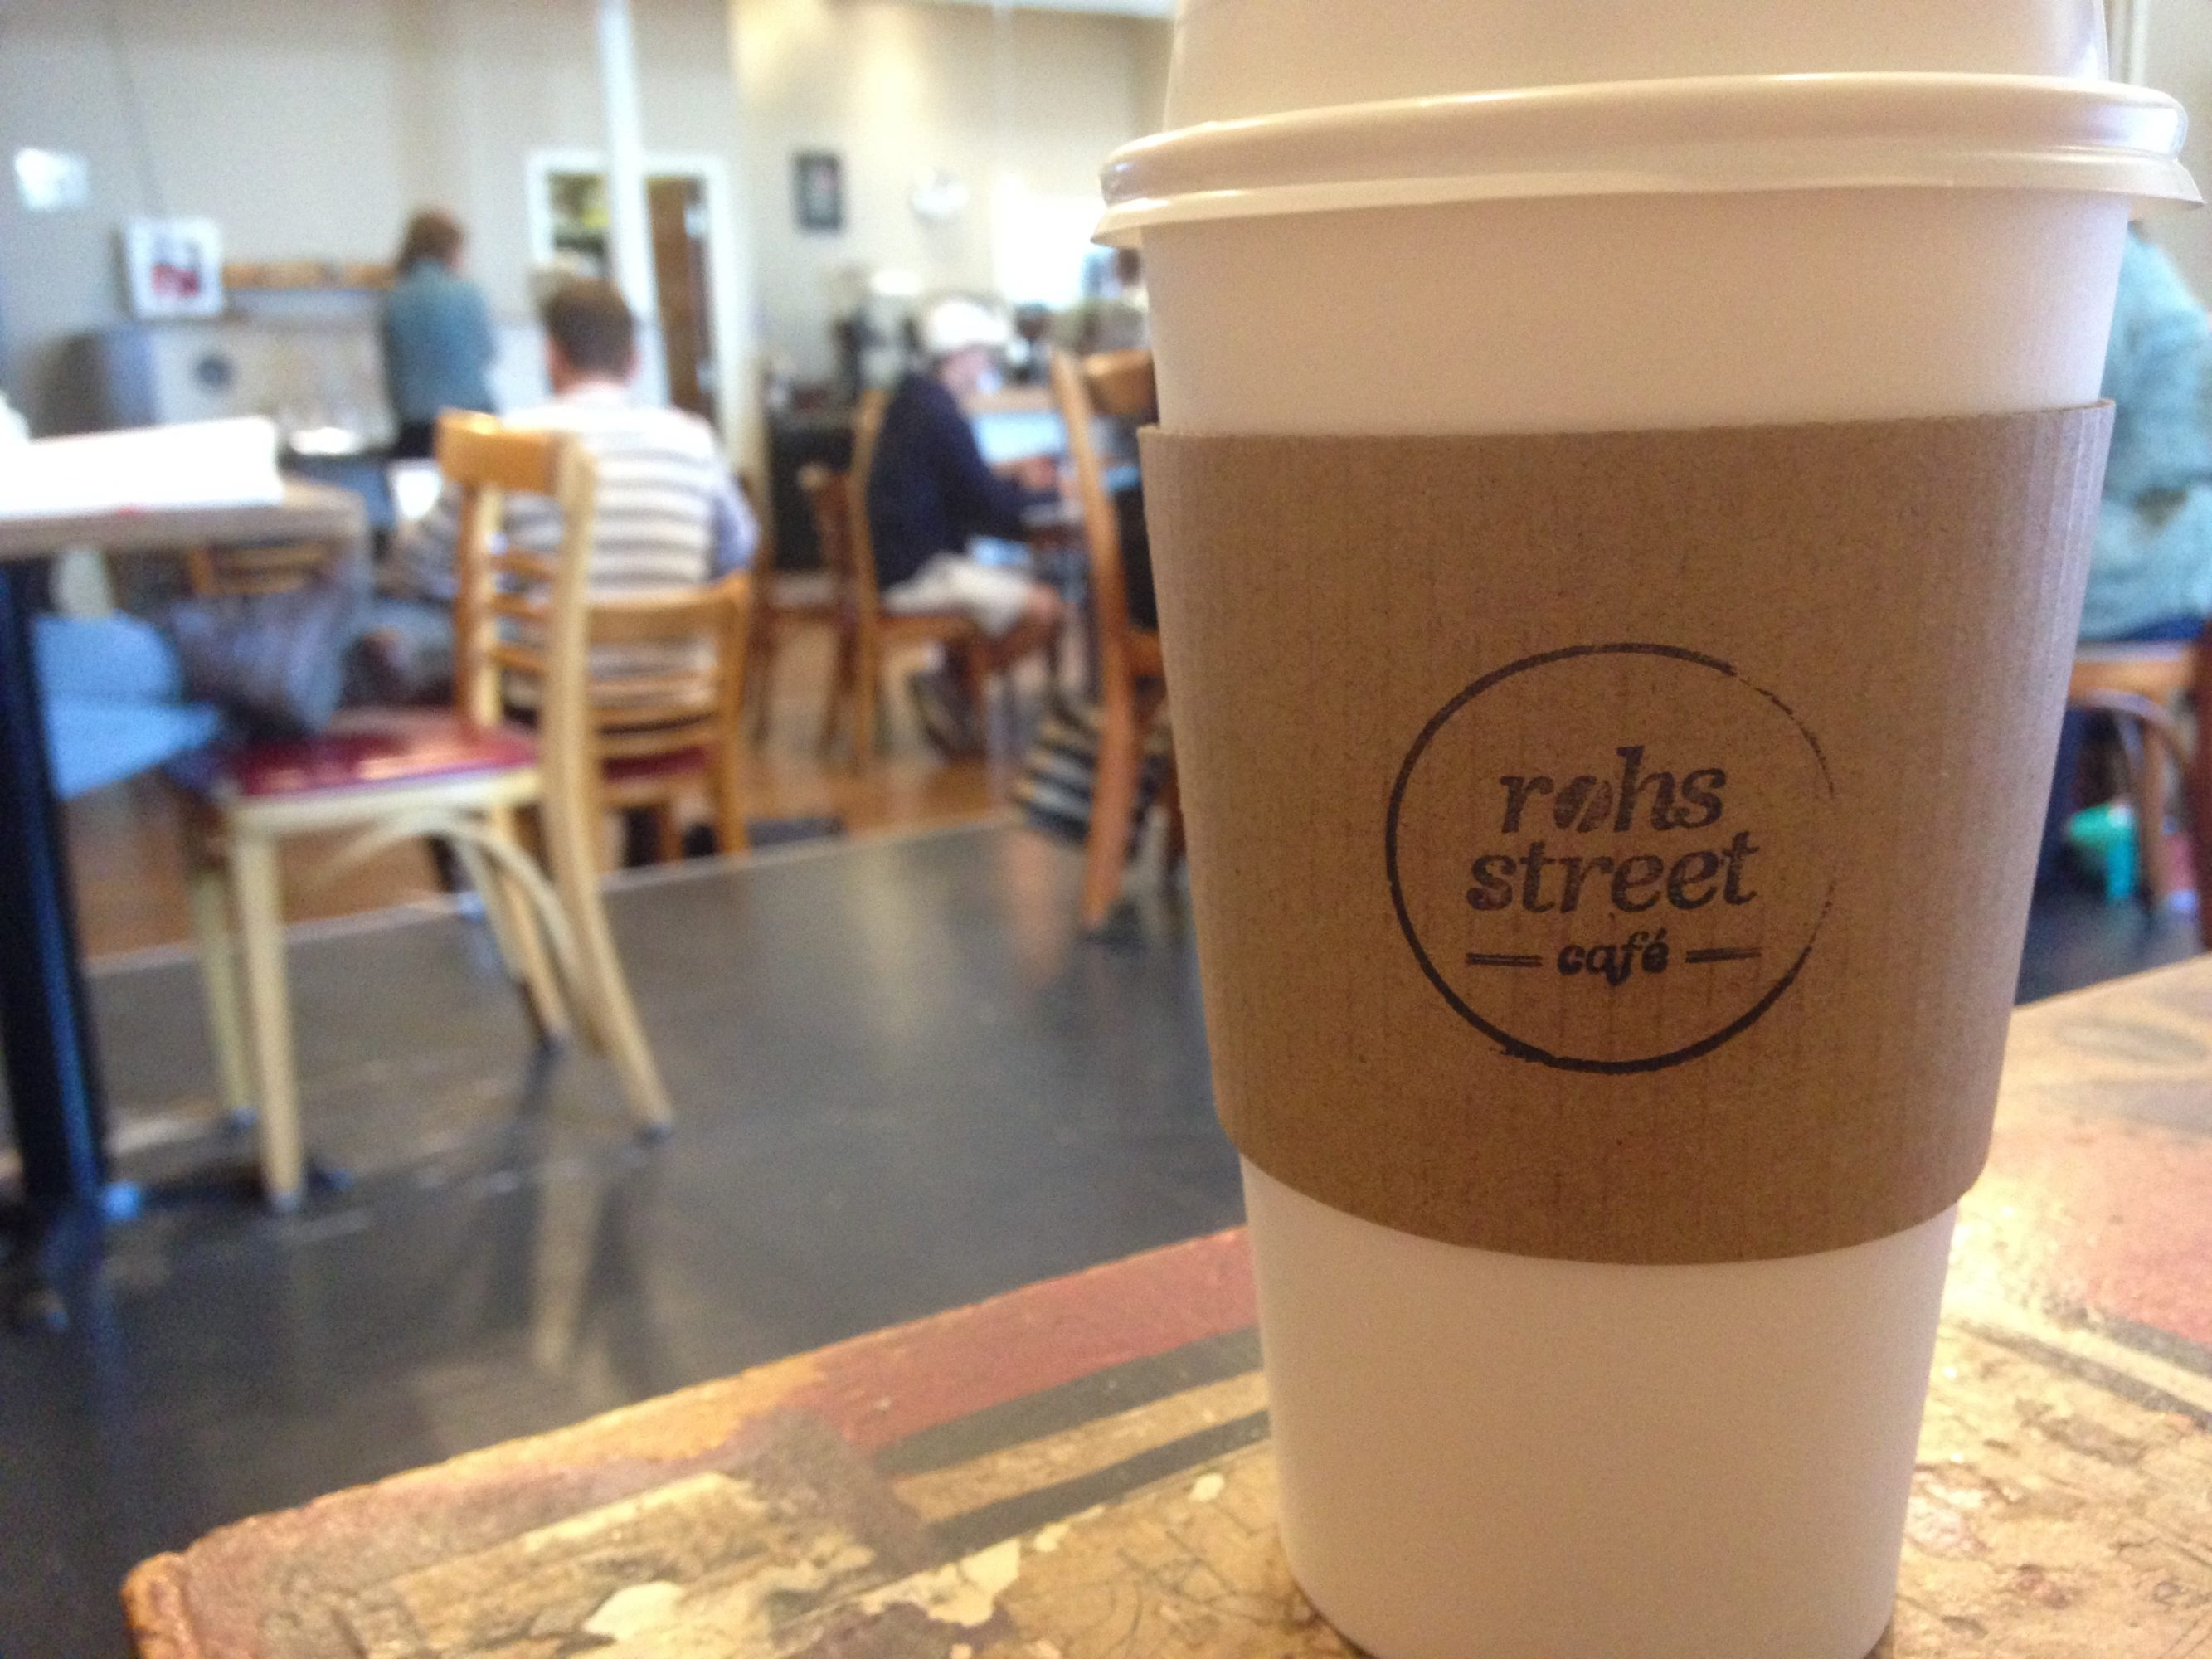 The simple Rohs Street Cafe logo printed on a coffee cup, with the cafe in the background